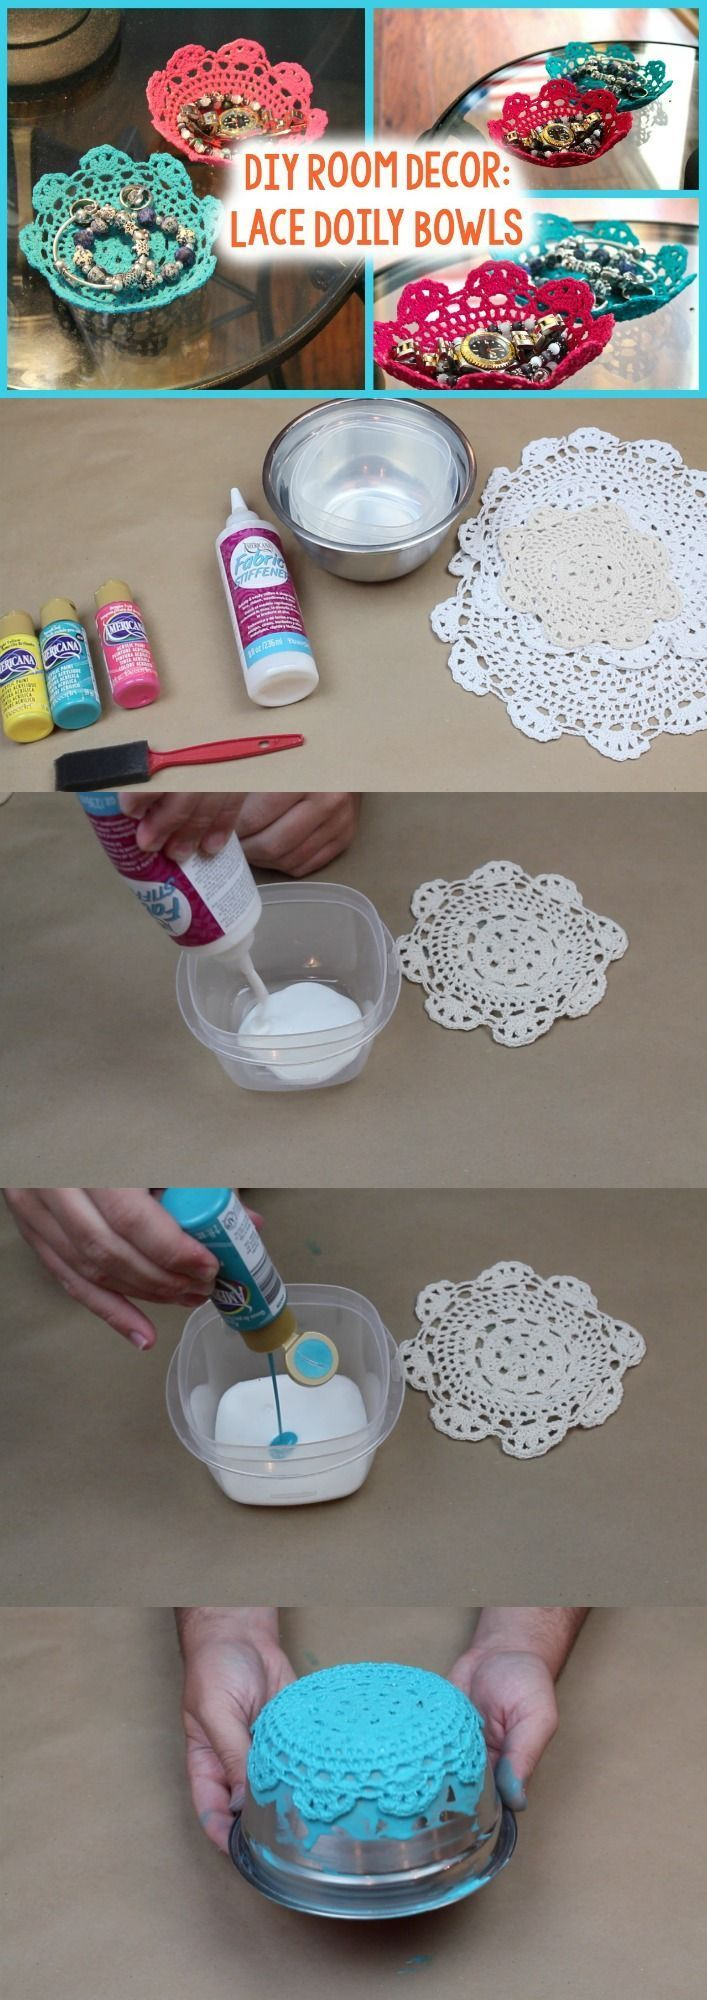 DIY Lace Doily Bowl - Perfect DIY to hold jewlery from Tanner Bell